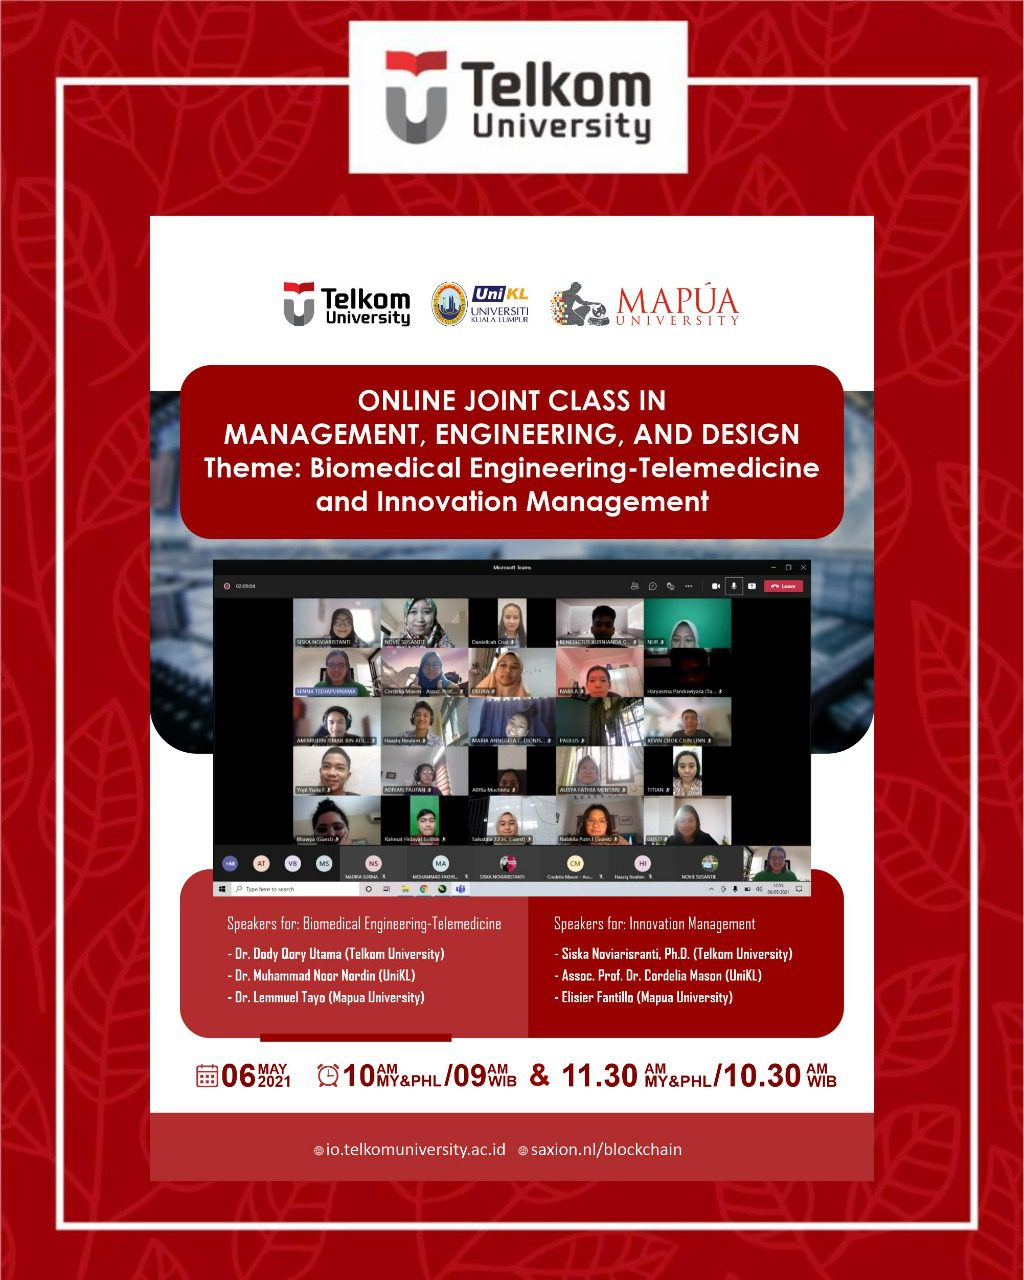 Innovation Management and Biomedical Engineering